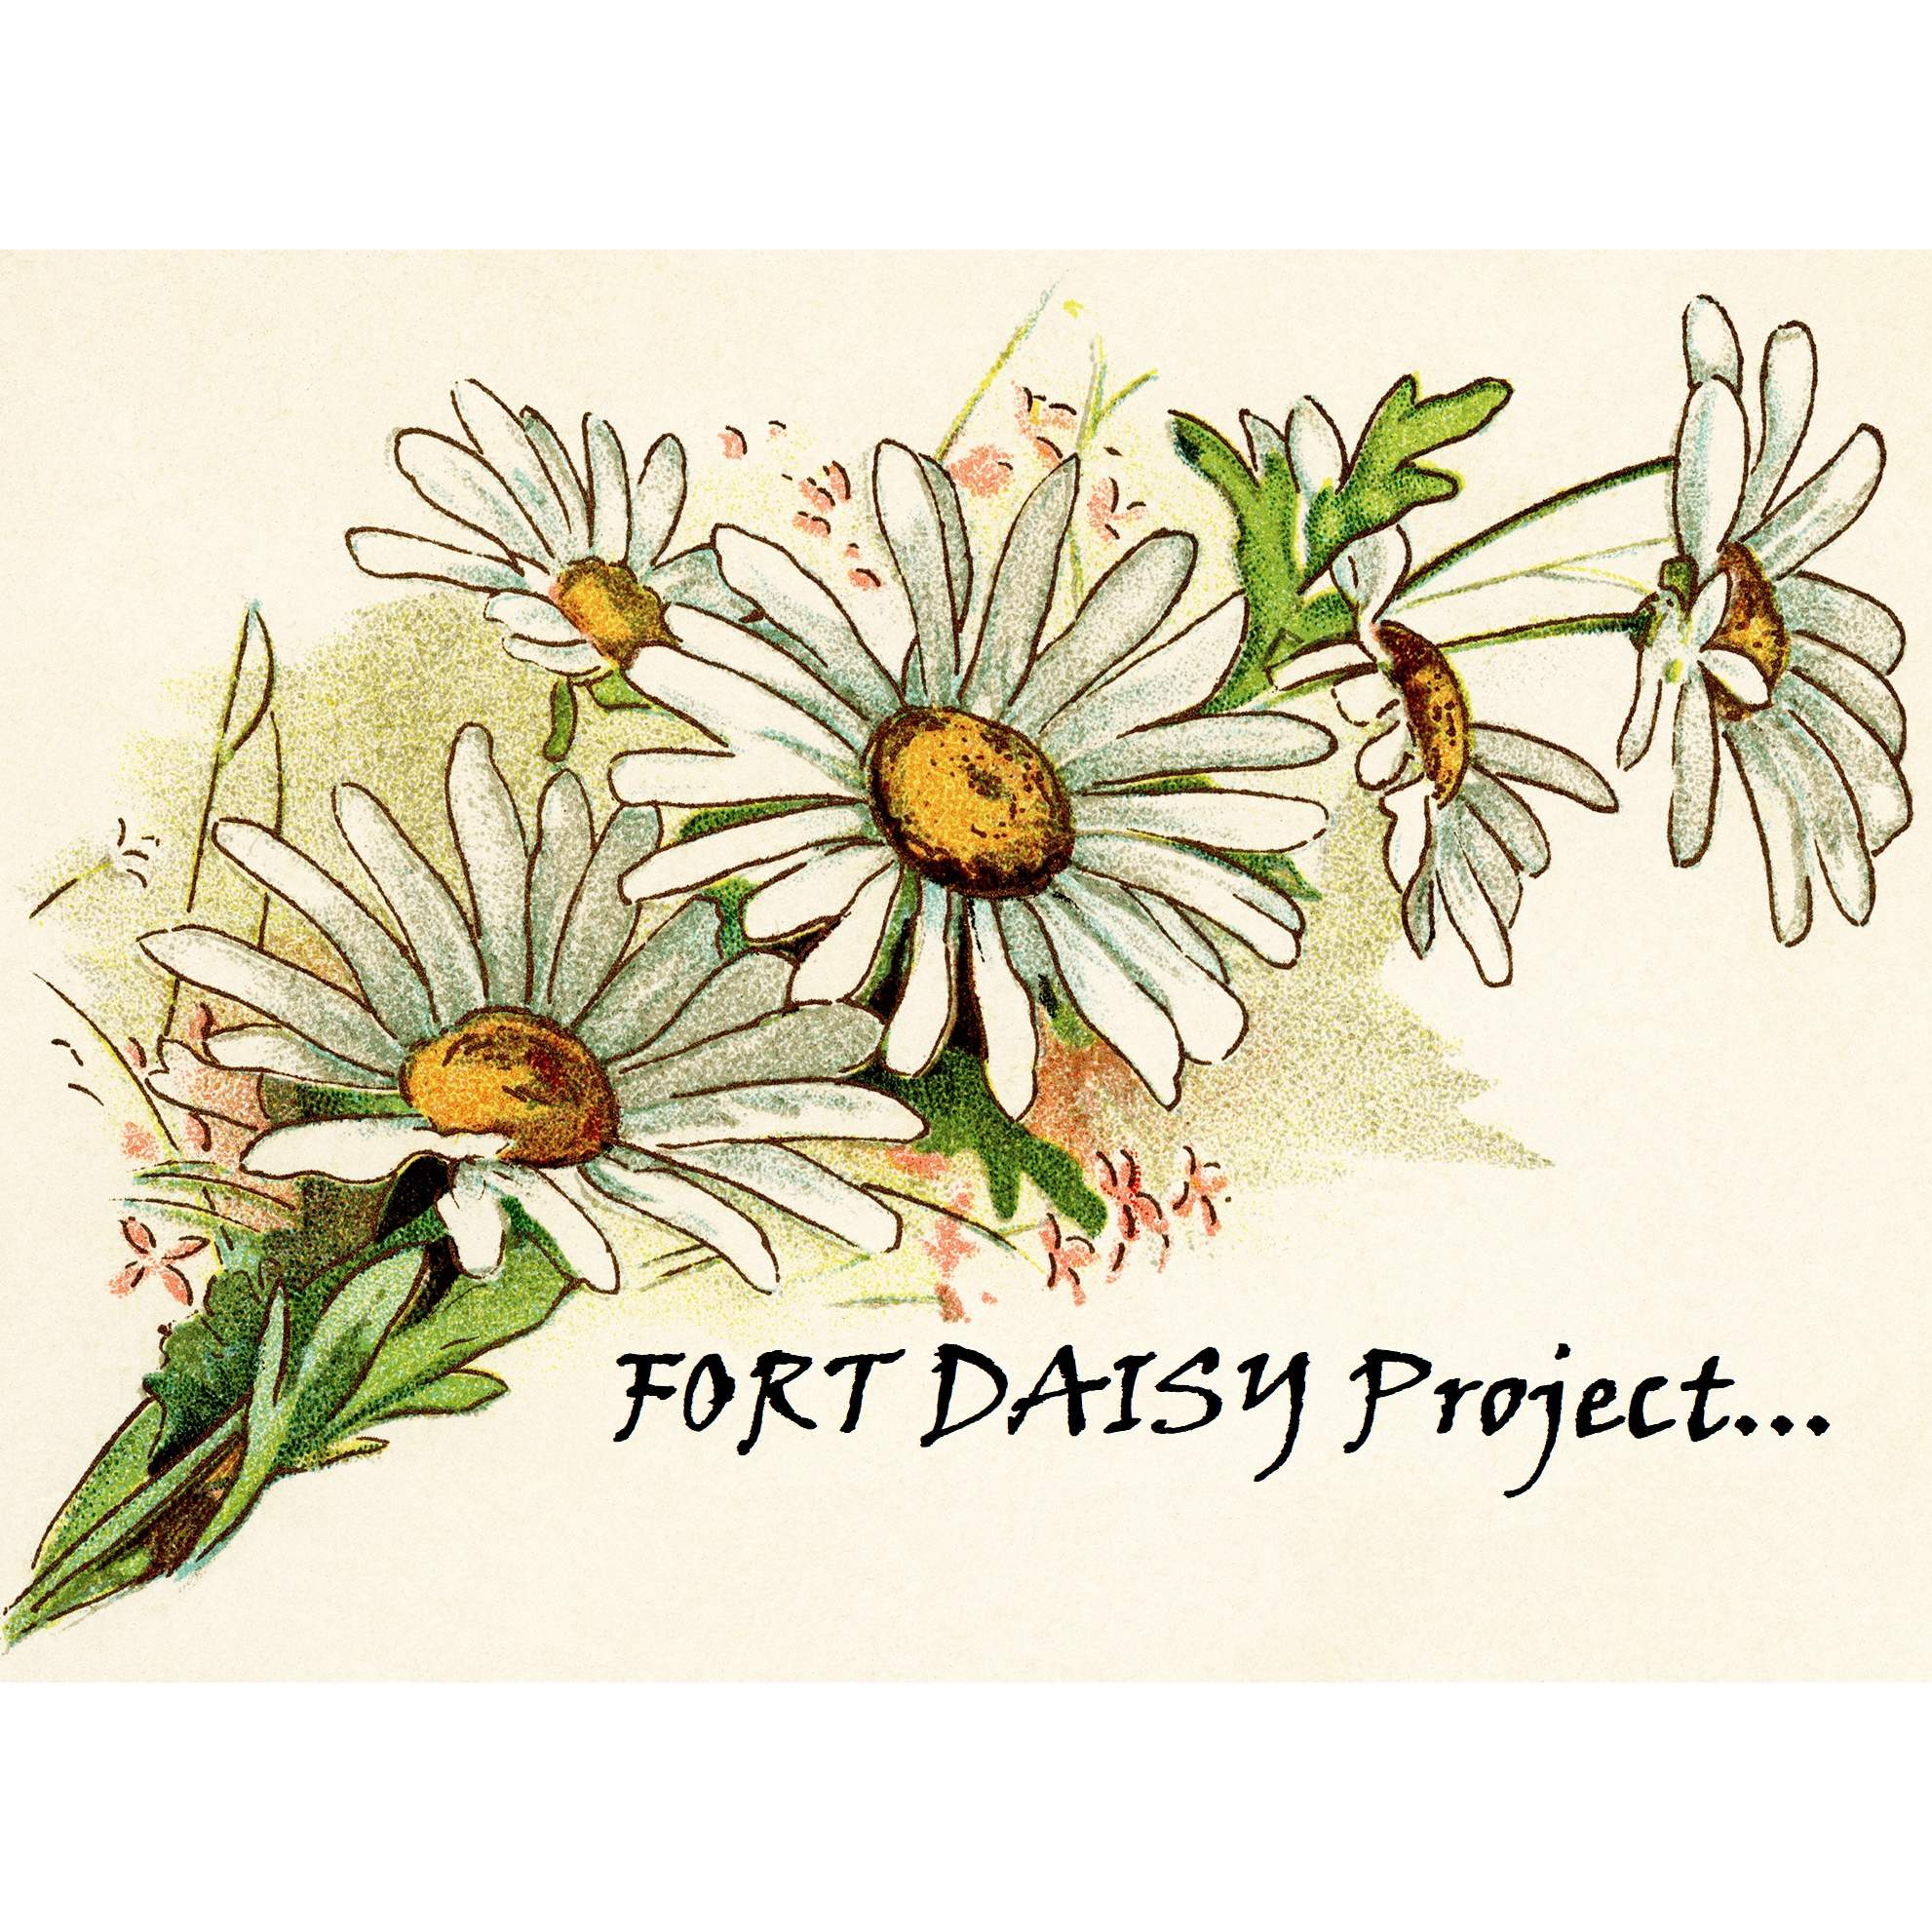 Fort Daisy Project